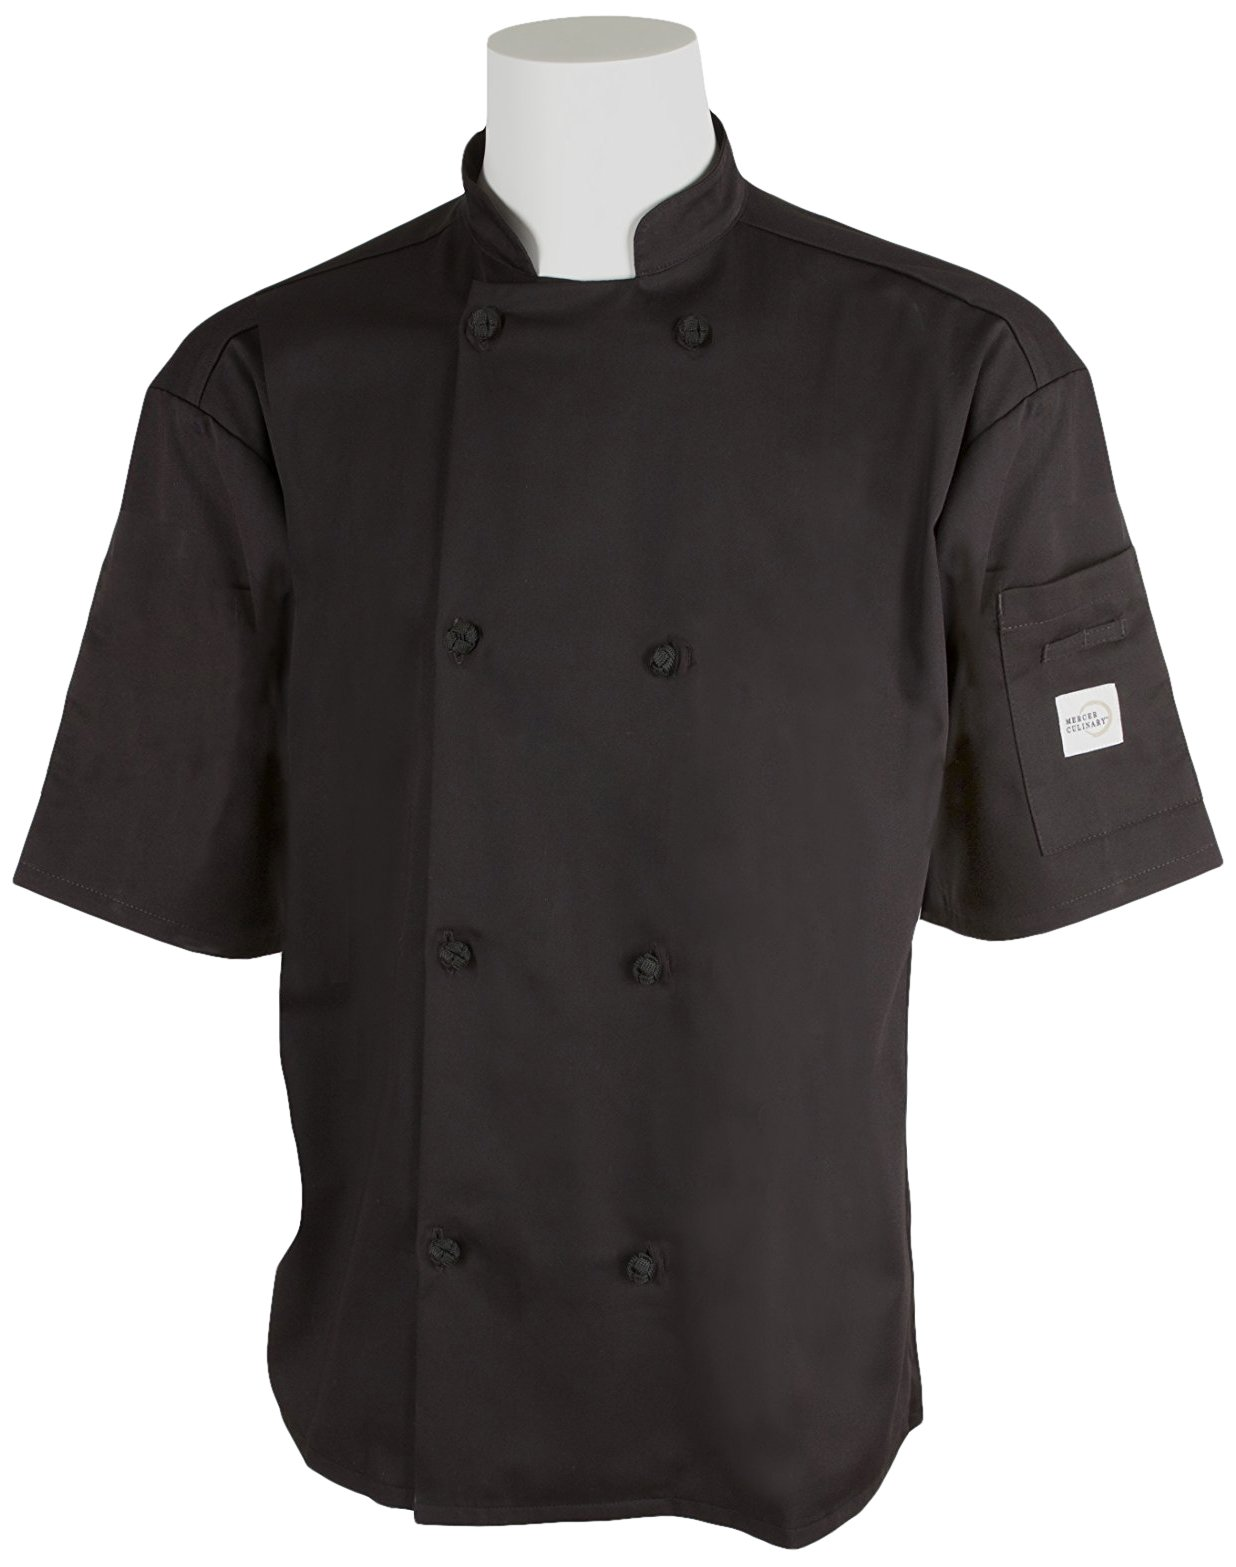 Mercer Culinary M61022BK3X Genesis Men's Short Sleeve Chef Jacket with Cloth Knot Buttons, 3X-Large, Black by Mercer Culinary